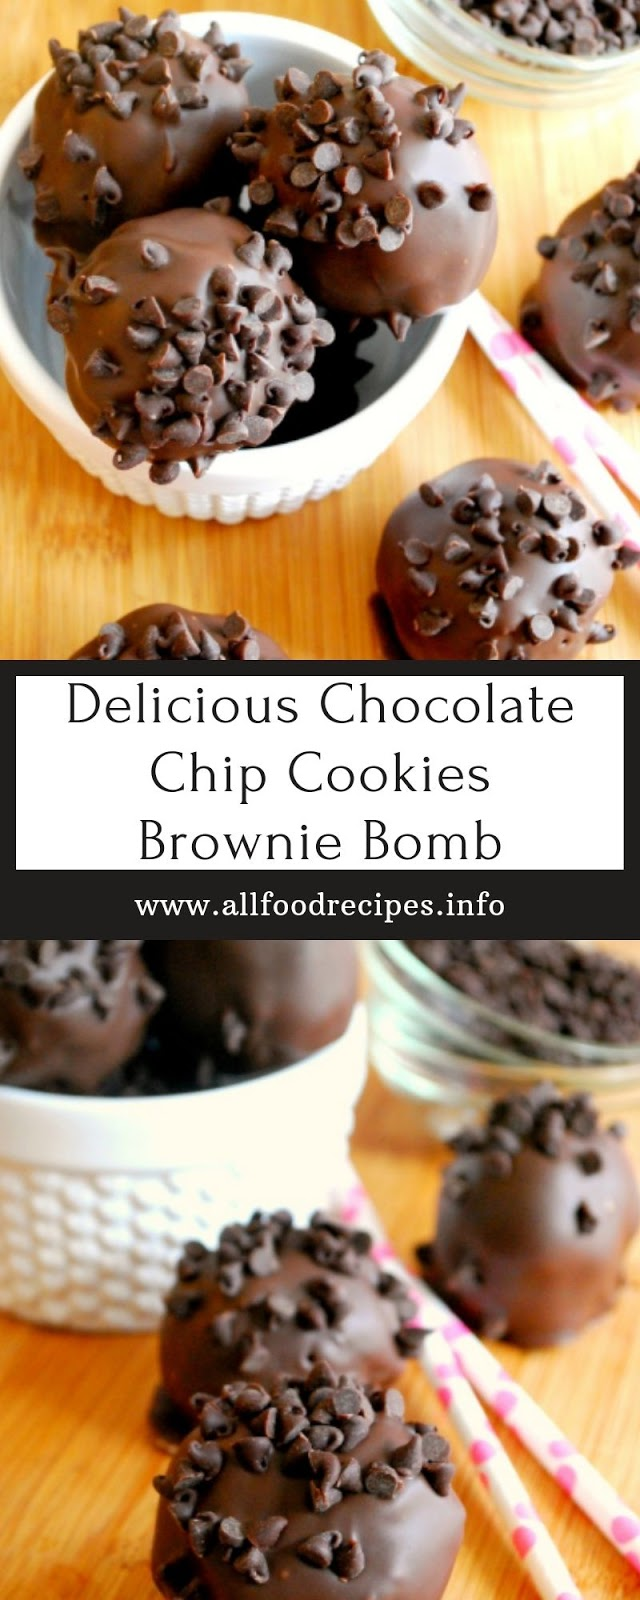 Delicious Chocolate Chip Cookies Brownie Bomb